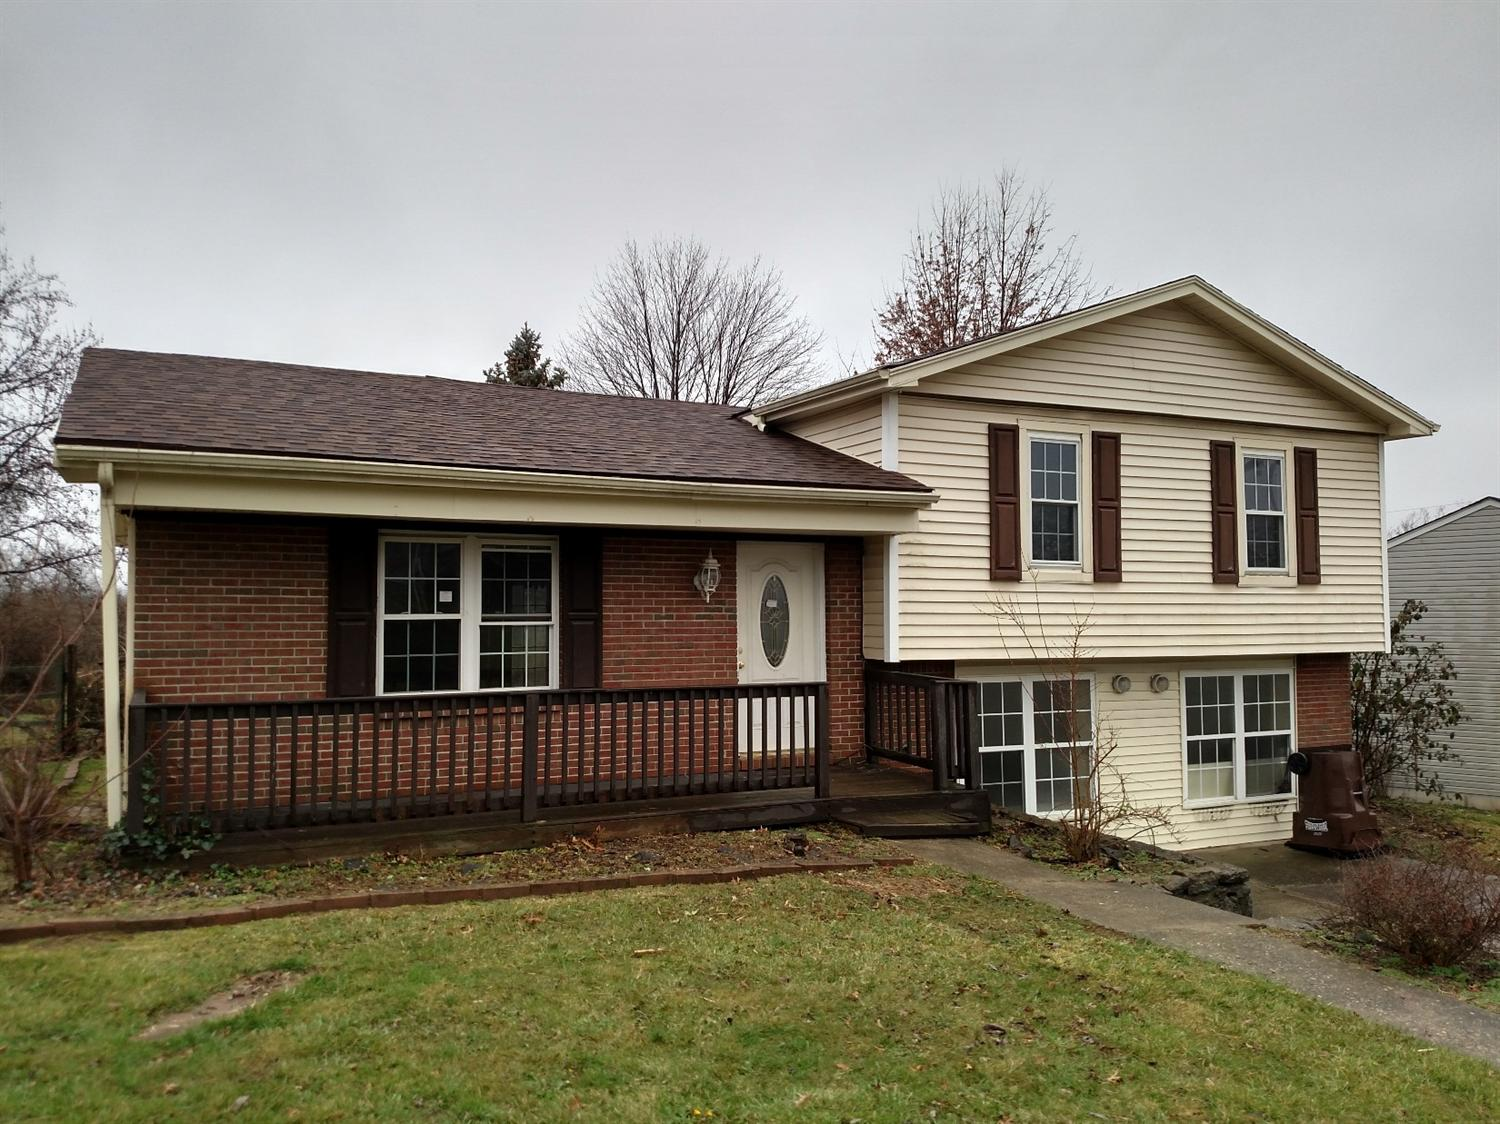 Photo 1 for 3 Willowood Ln Walton, KY 41094